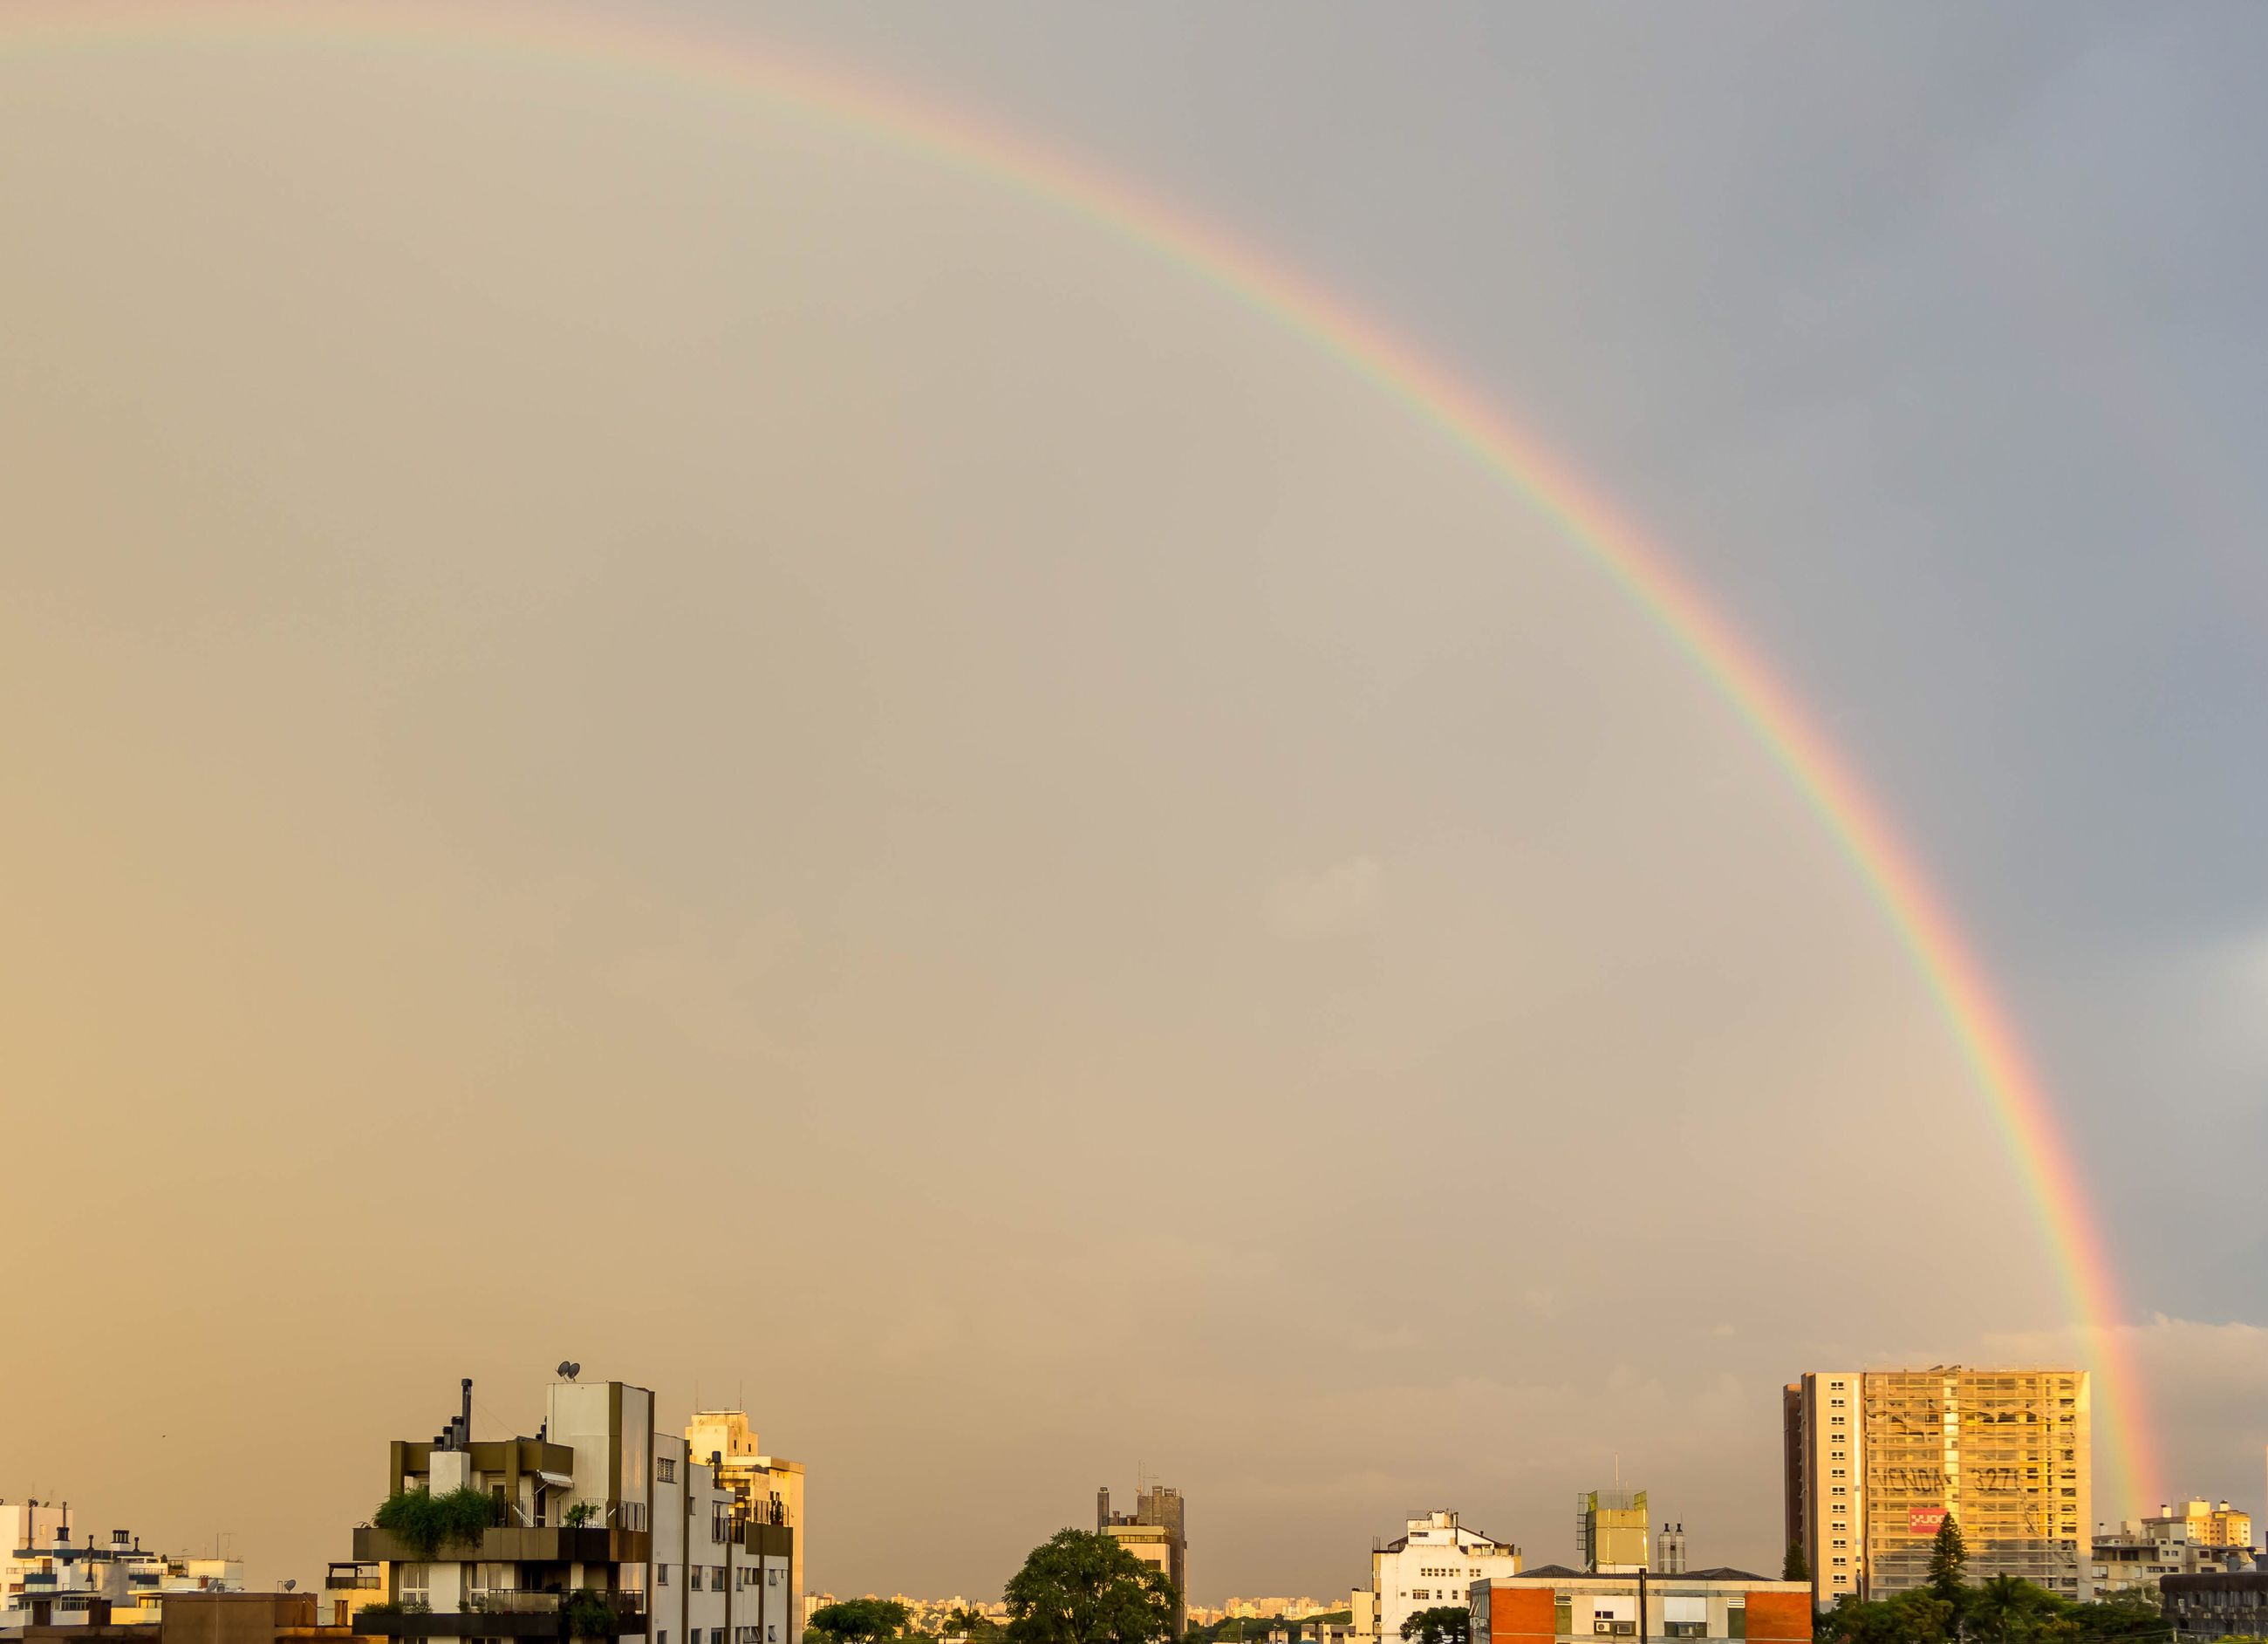 rainbow, building exterior, cityscape, architecture, city, built structure, outdoors, scenics, no people, sky, double rainbow, beauty in nature, urban skyline, nature, day